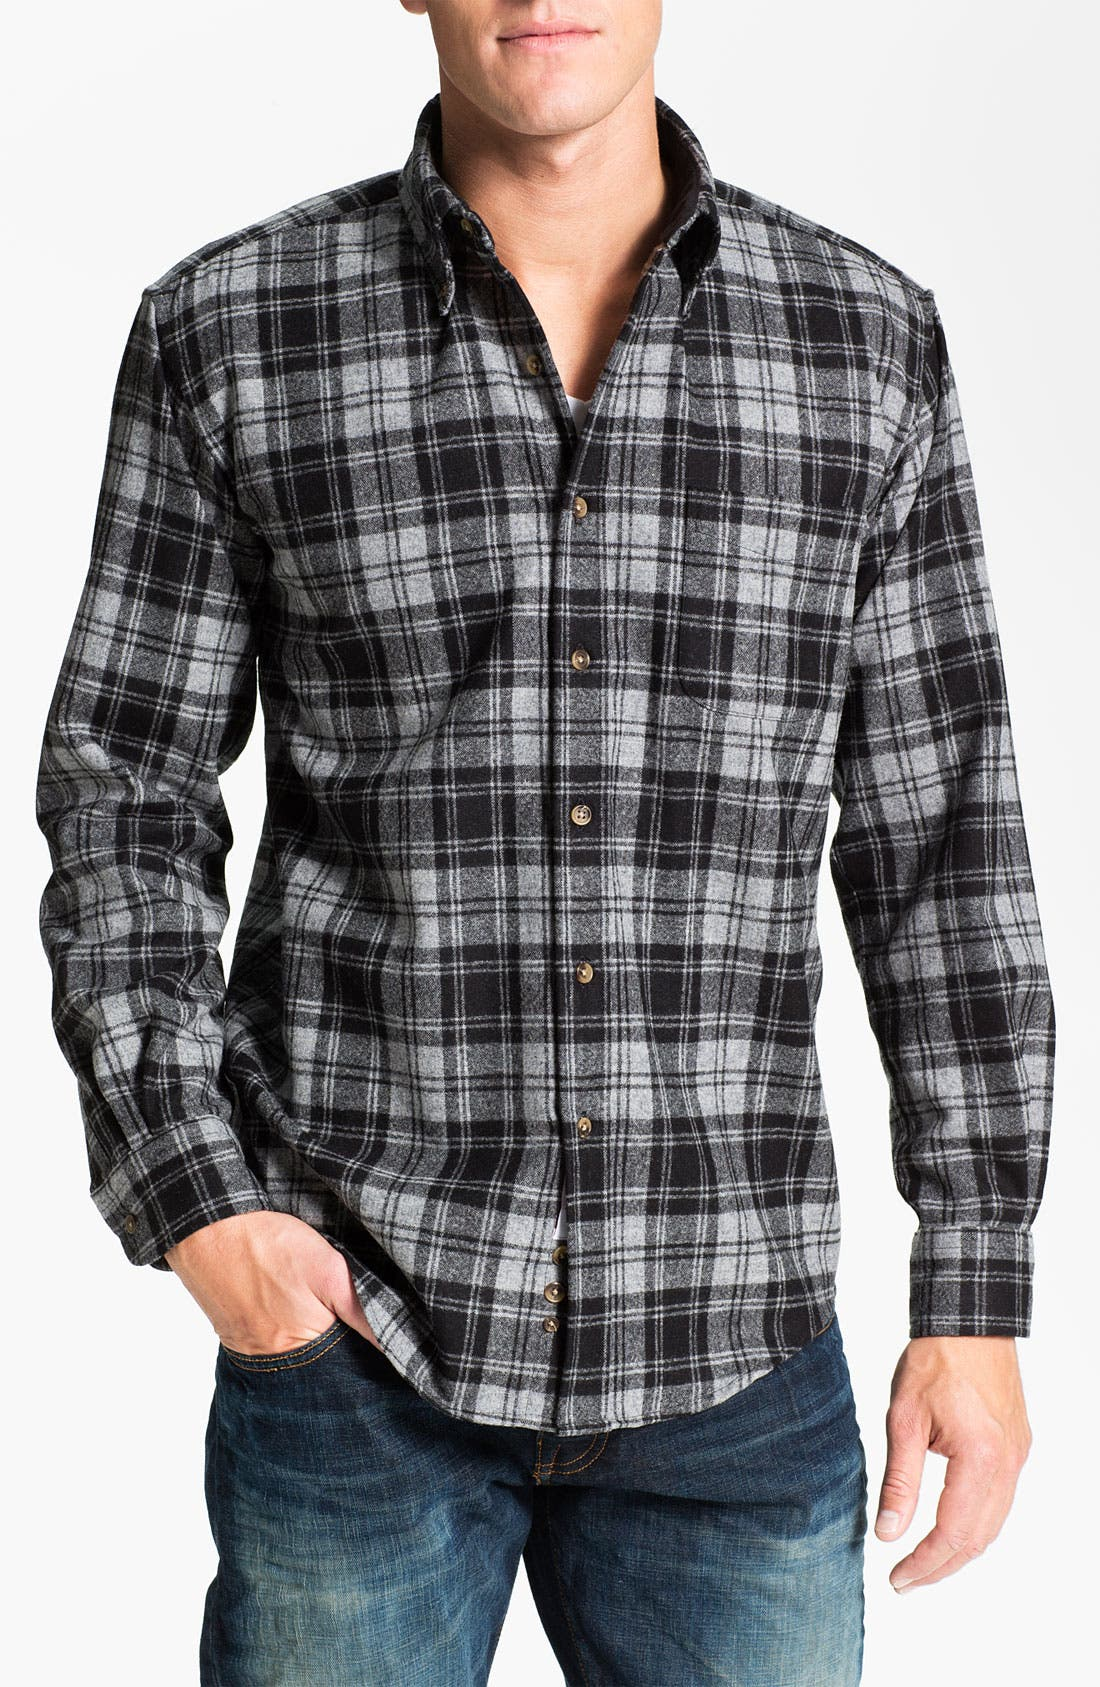 Alternate Image 1 Selected - Pendleton 'Fireside' Wool Plaid Flannel Shirt